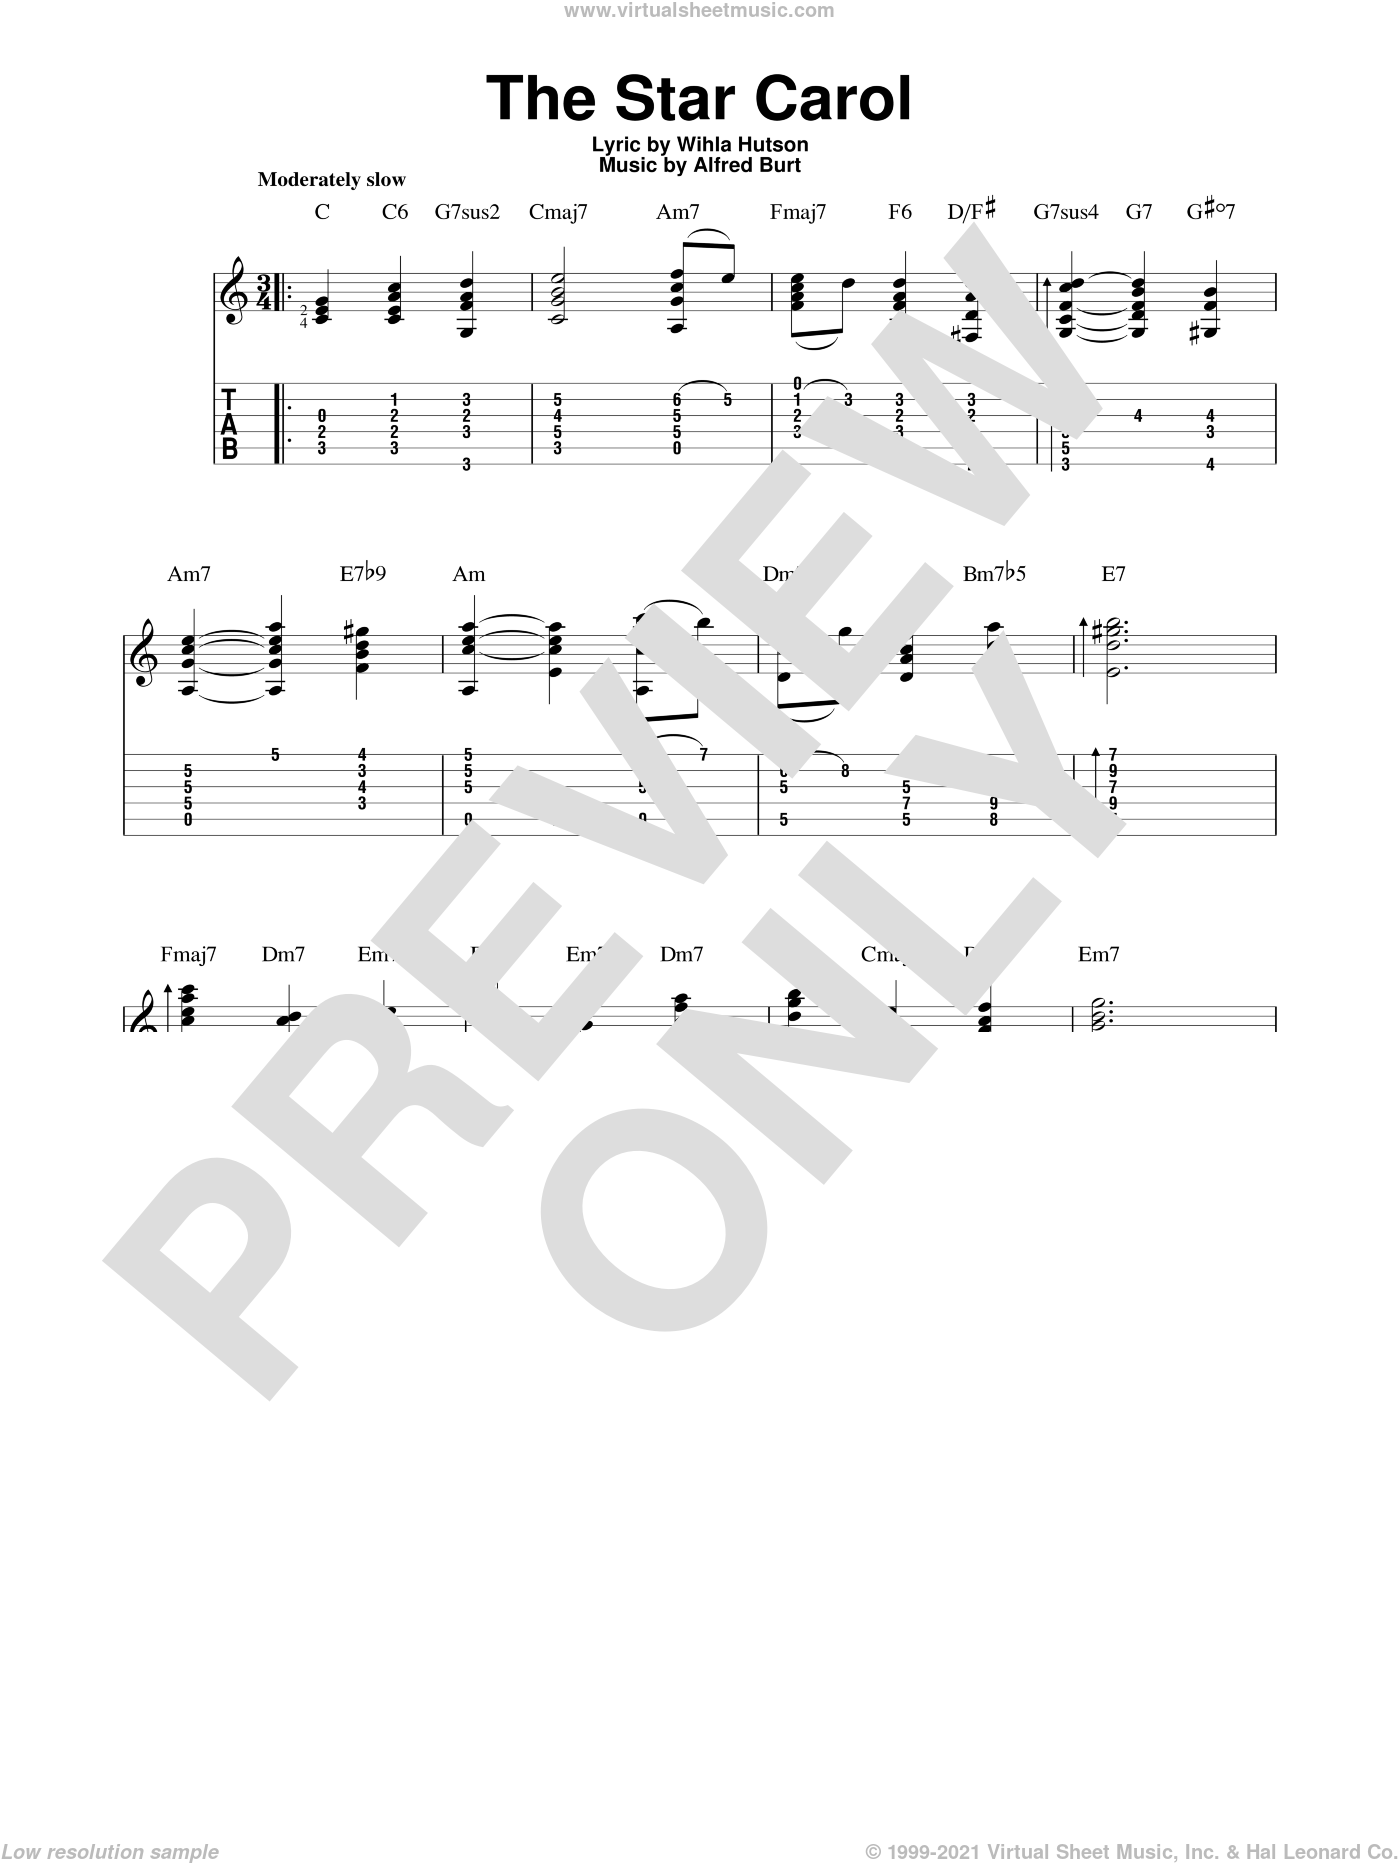 The Star Carol sheet music for guitar solo by Wihla Hutson